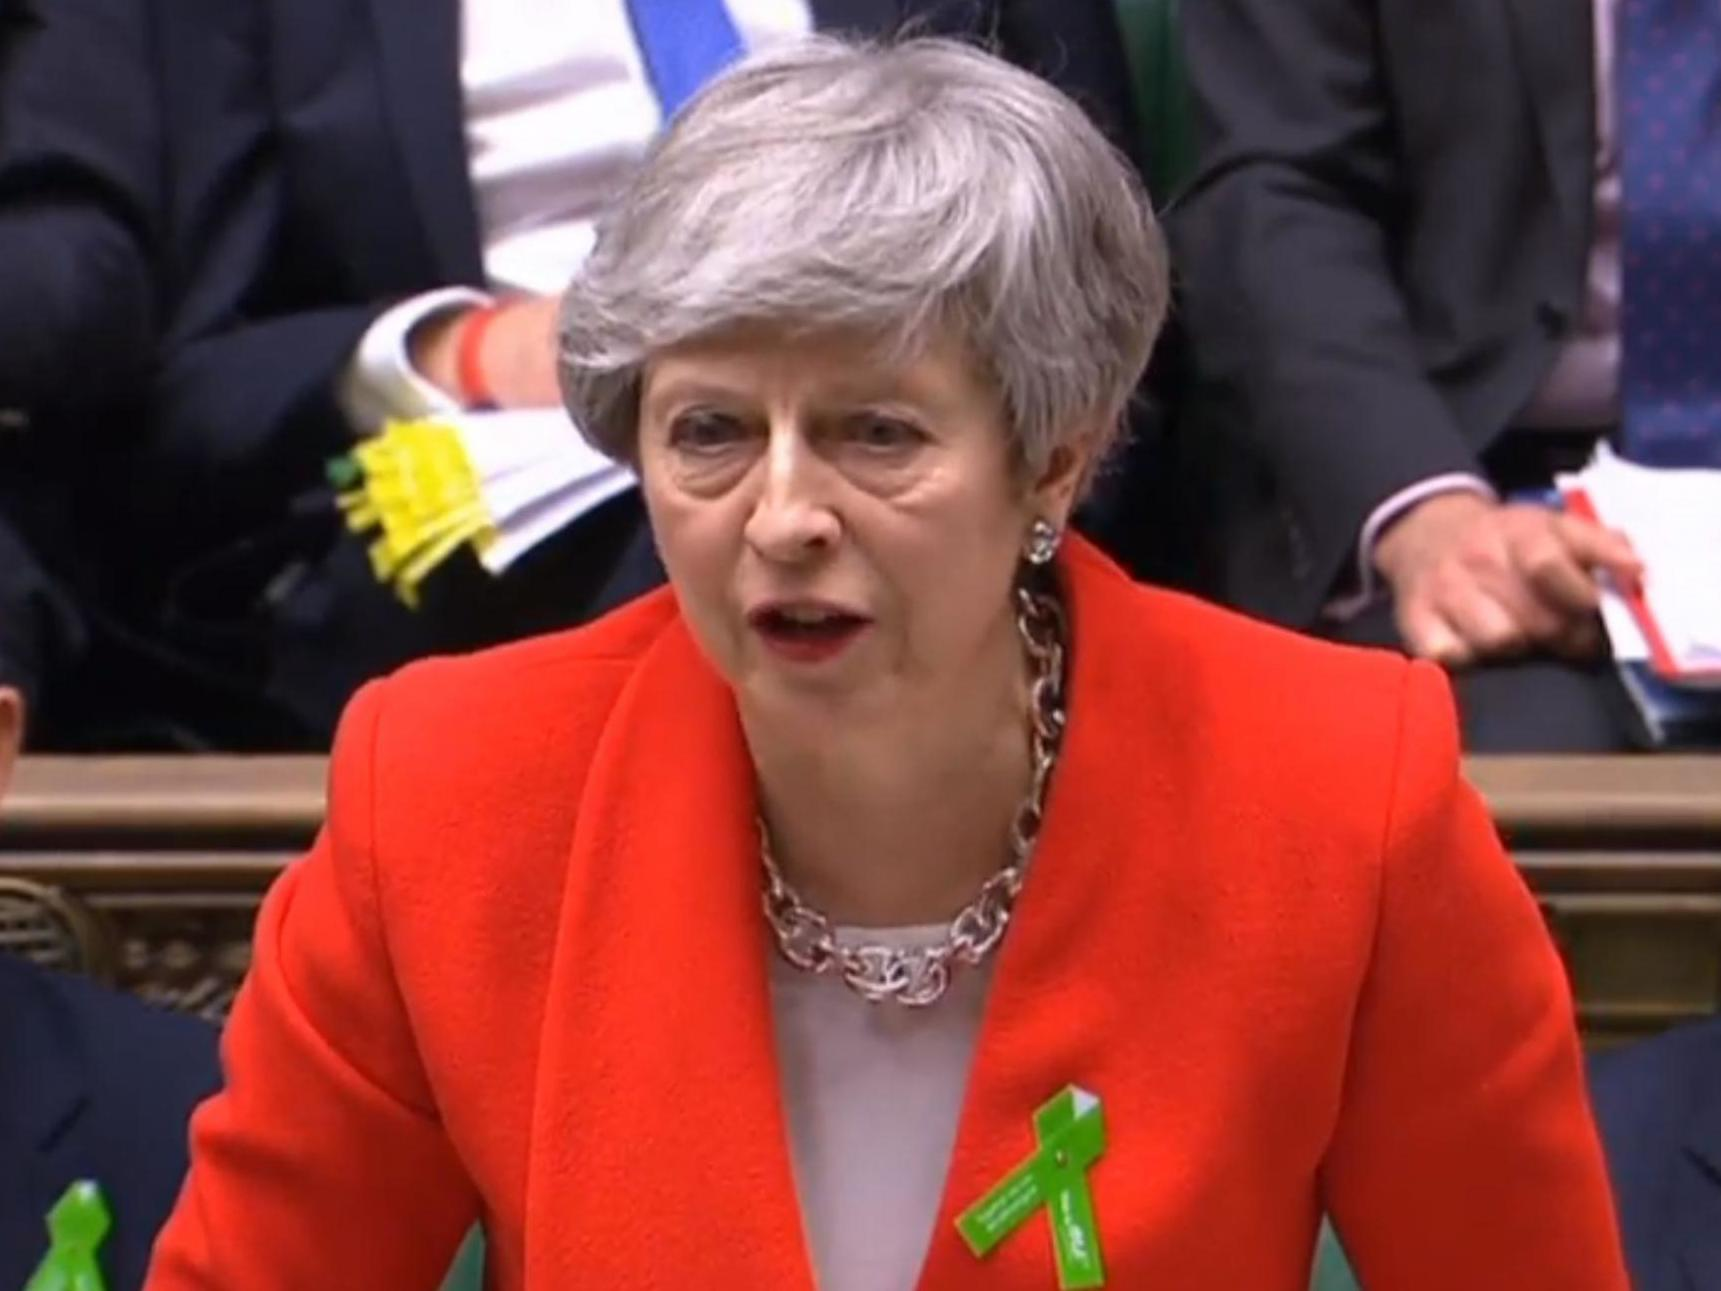 How does Theresa May's plan for a new Commons votes on her Brexit deal affect those hoping to succeed her?